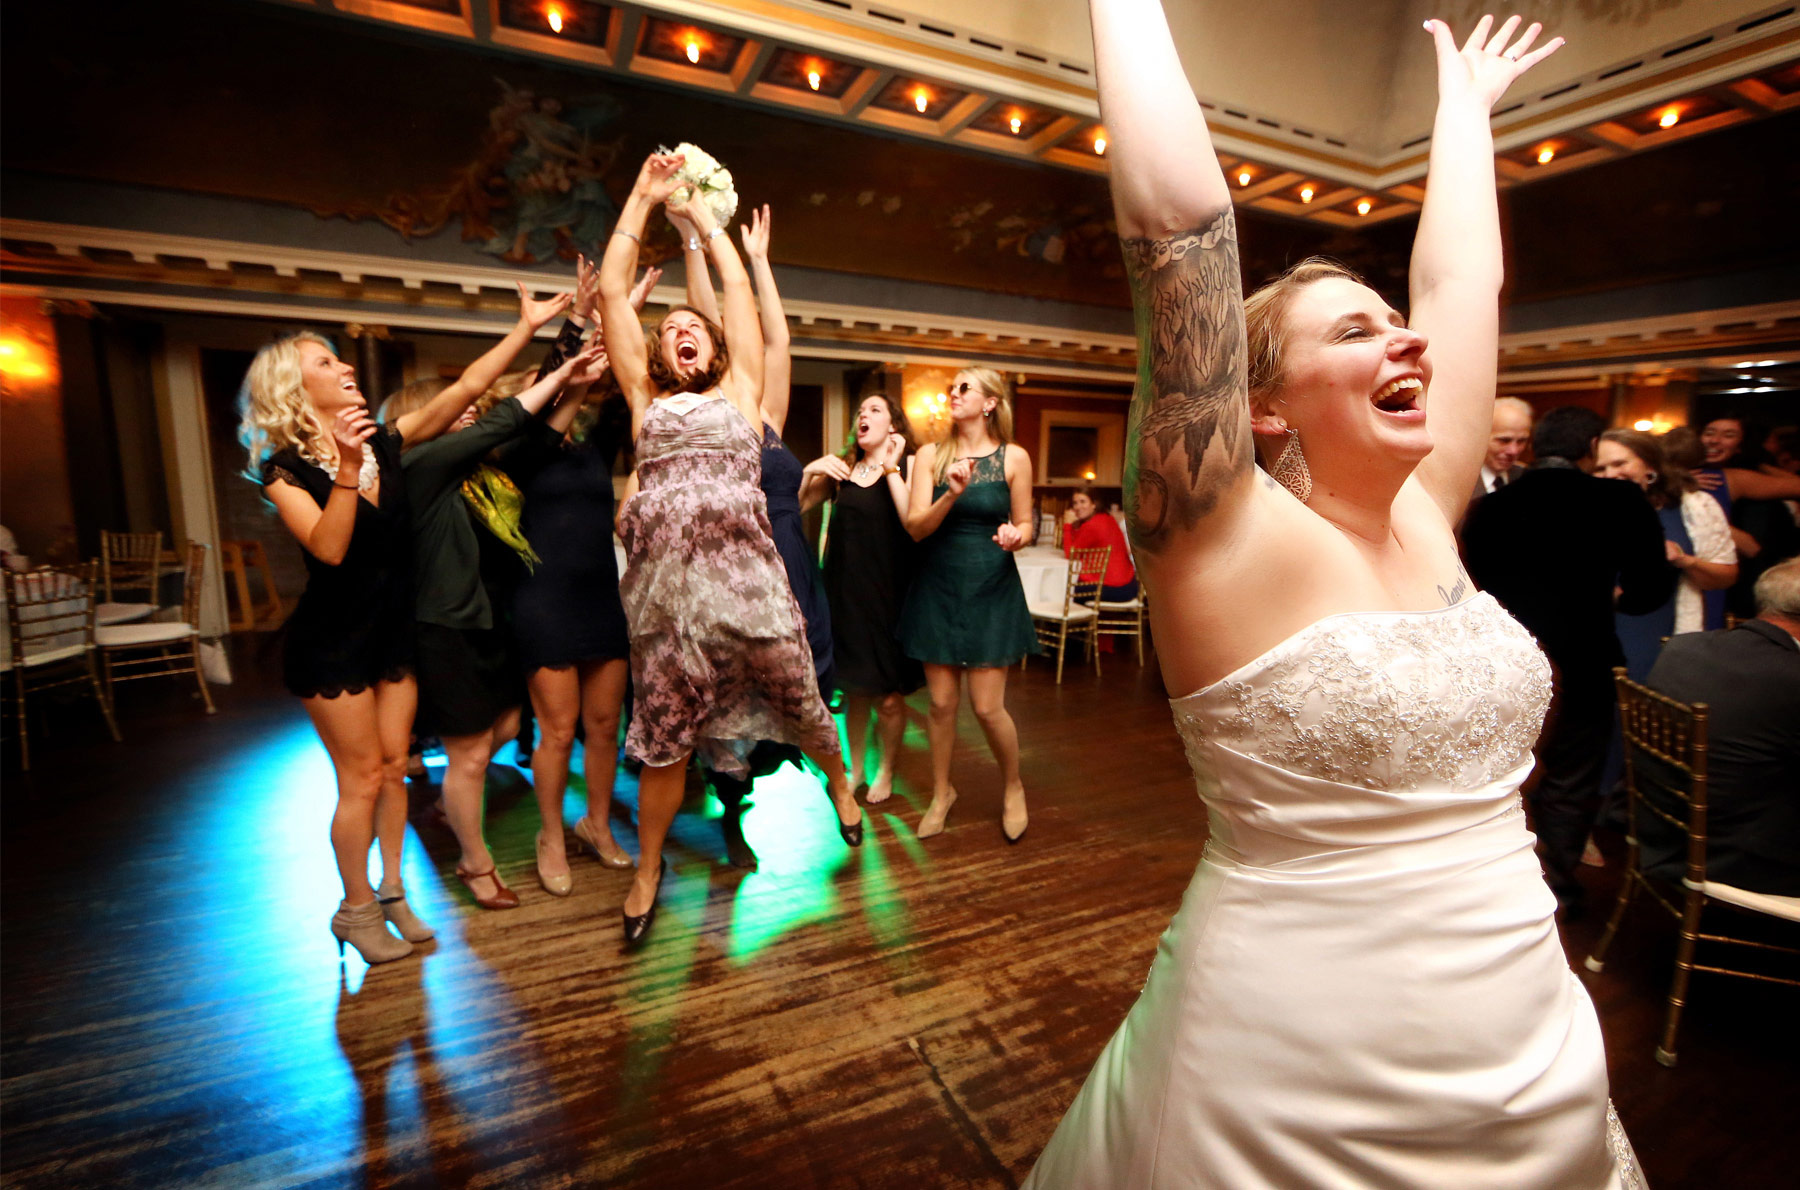 13-Minneapolis-Minnesota-Wedding-Photography-by-Vick-Photography-Semple-Mansion-Reception-Bouquet-Toss-Ariel-and-Jared.jpg